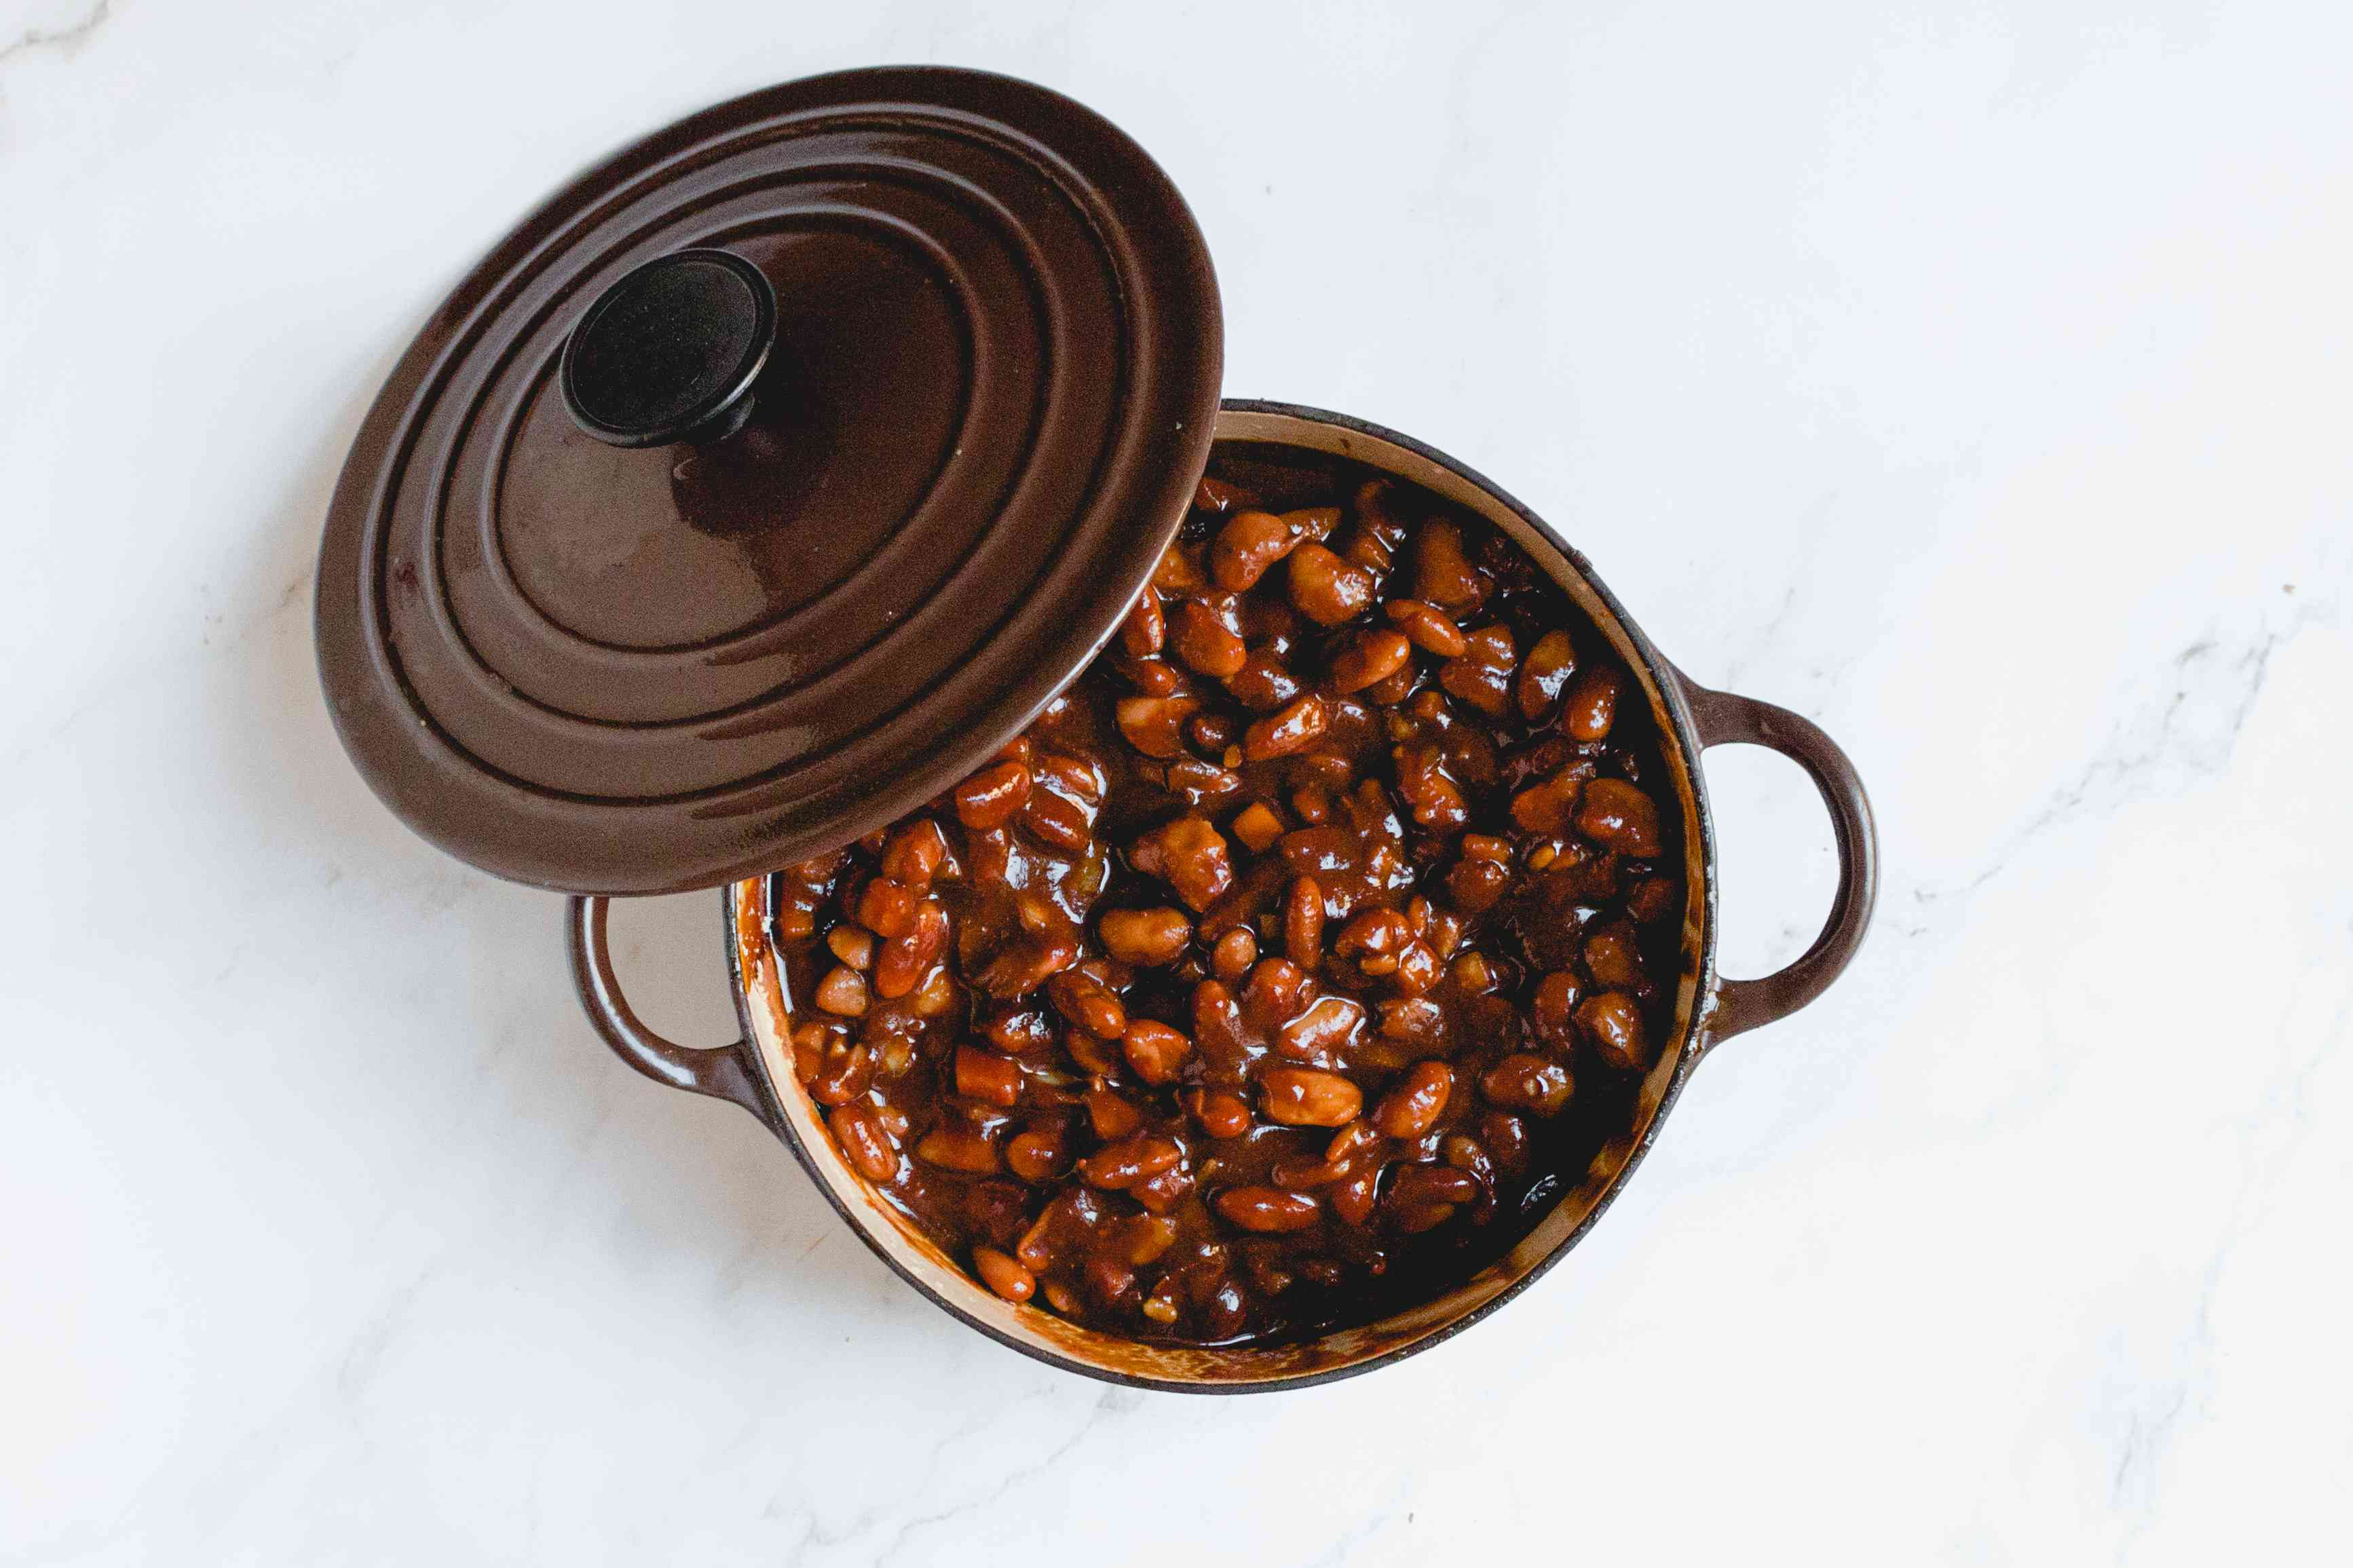 Vegetarian Boston Baked Beans With Molasses in a Dutch oven